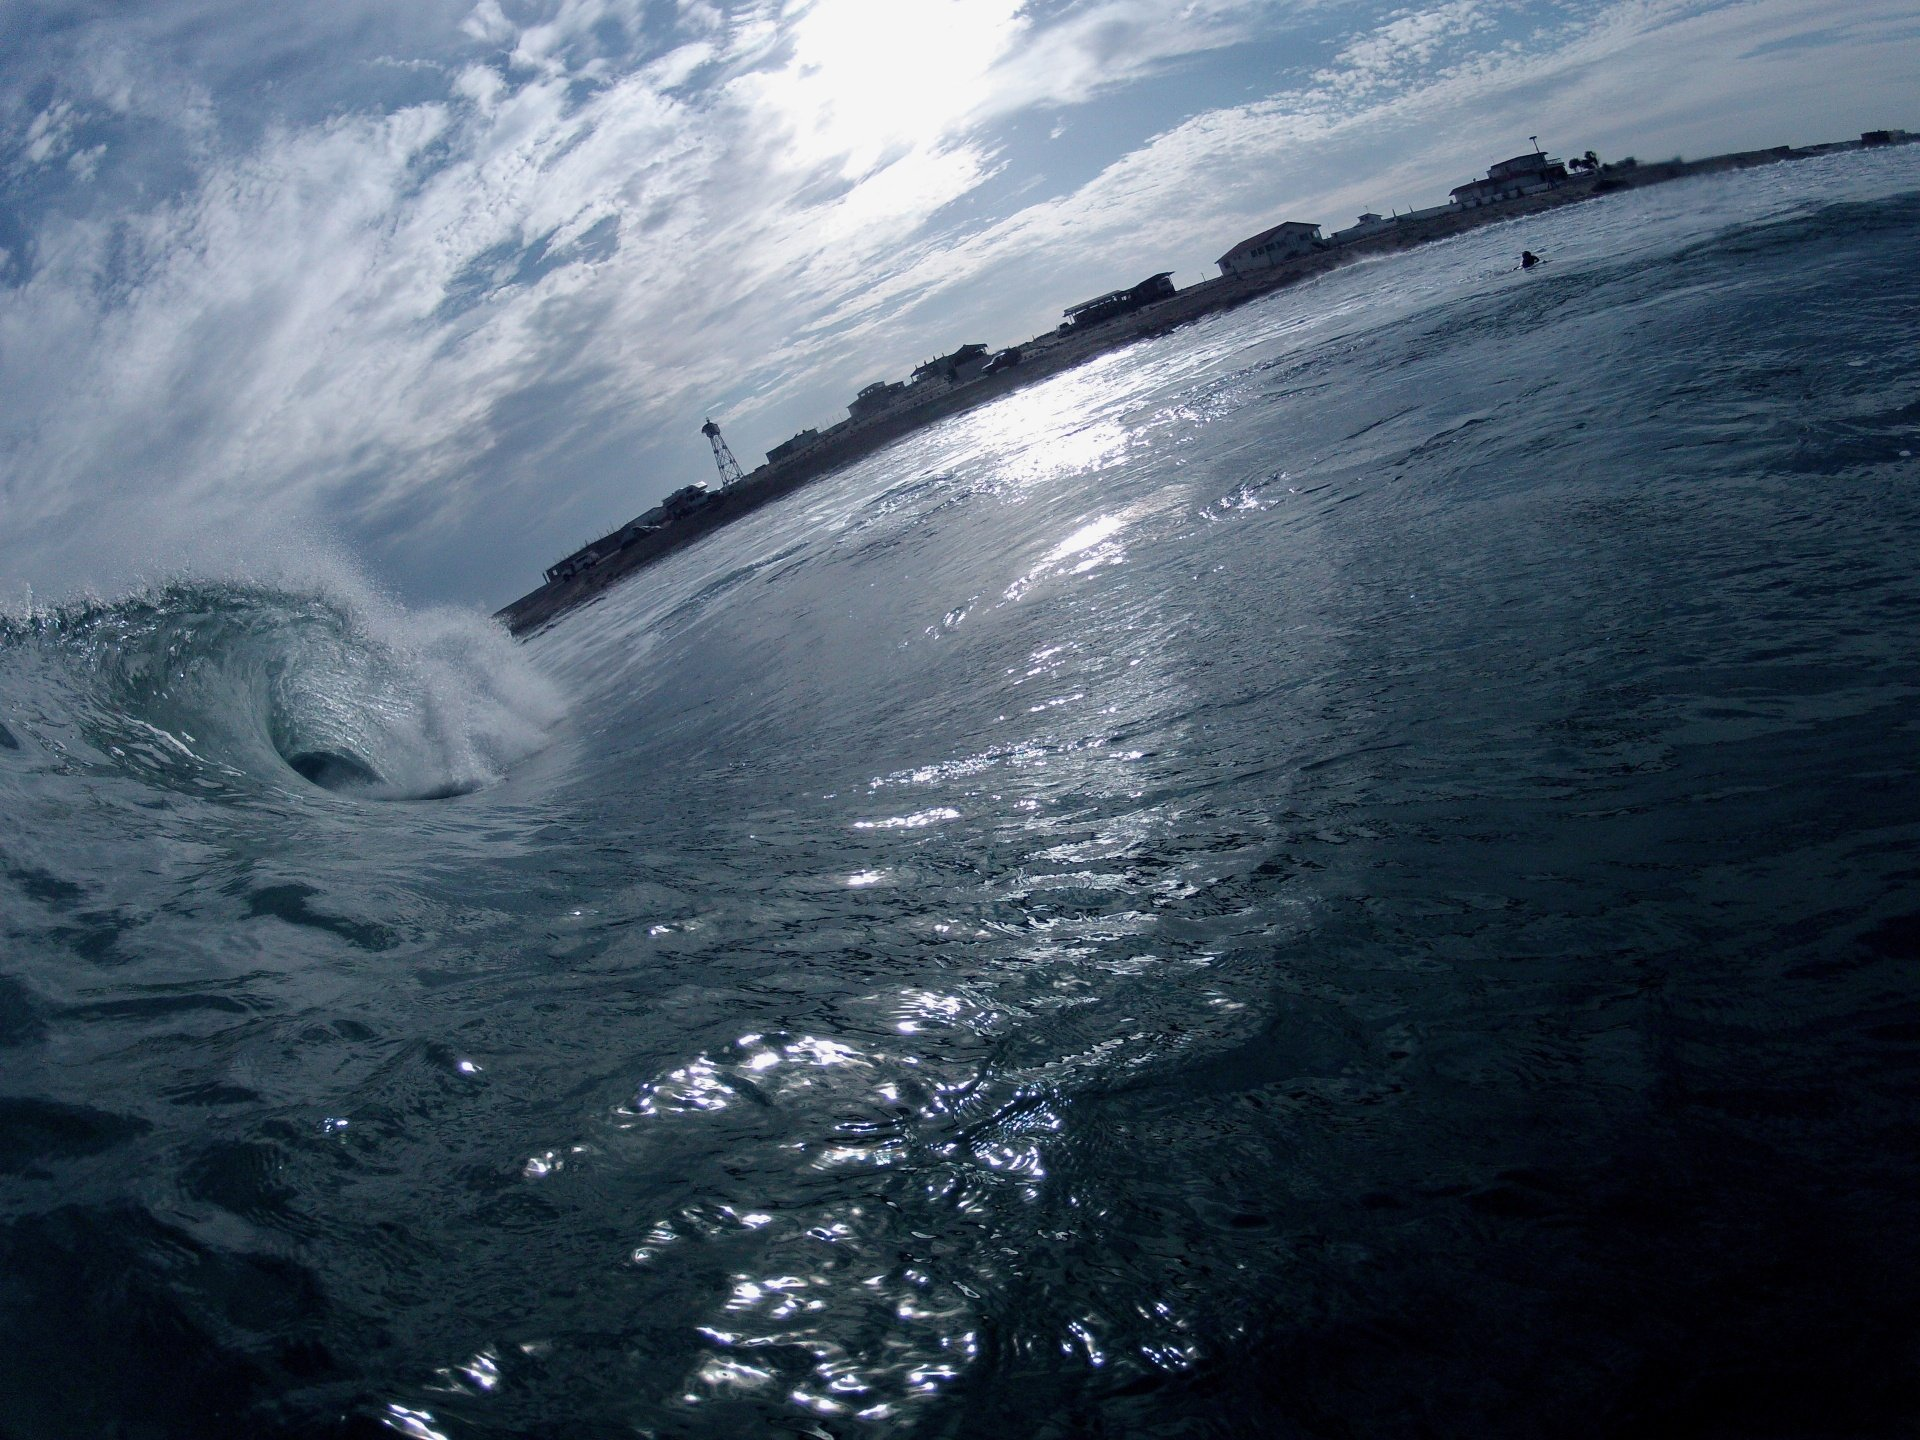 Mike Townsend's photo of Punta Abreojos